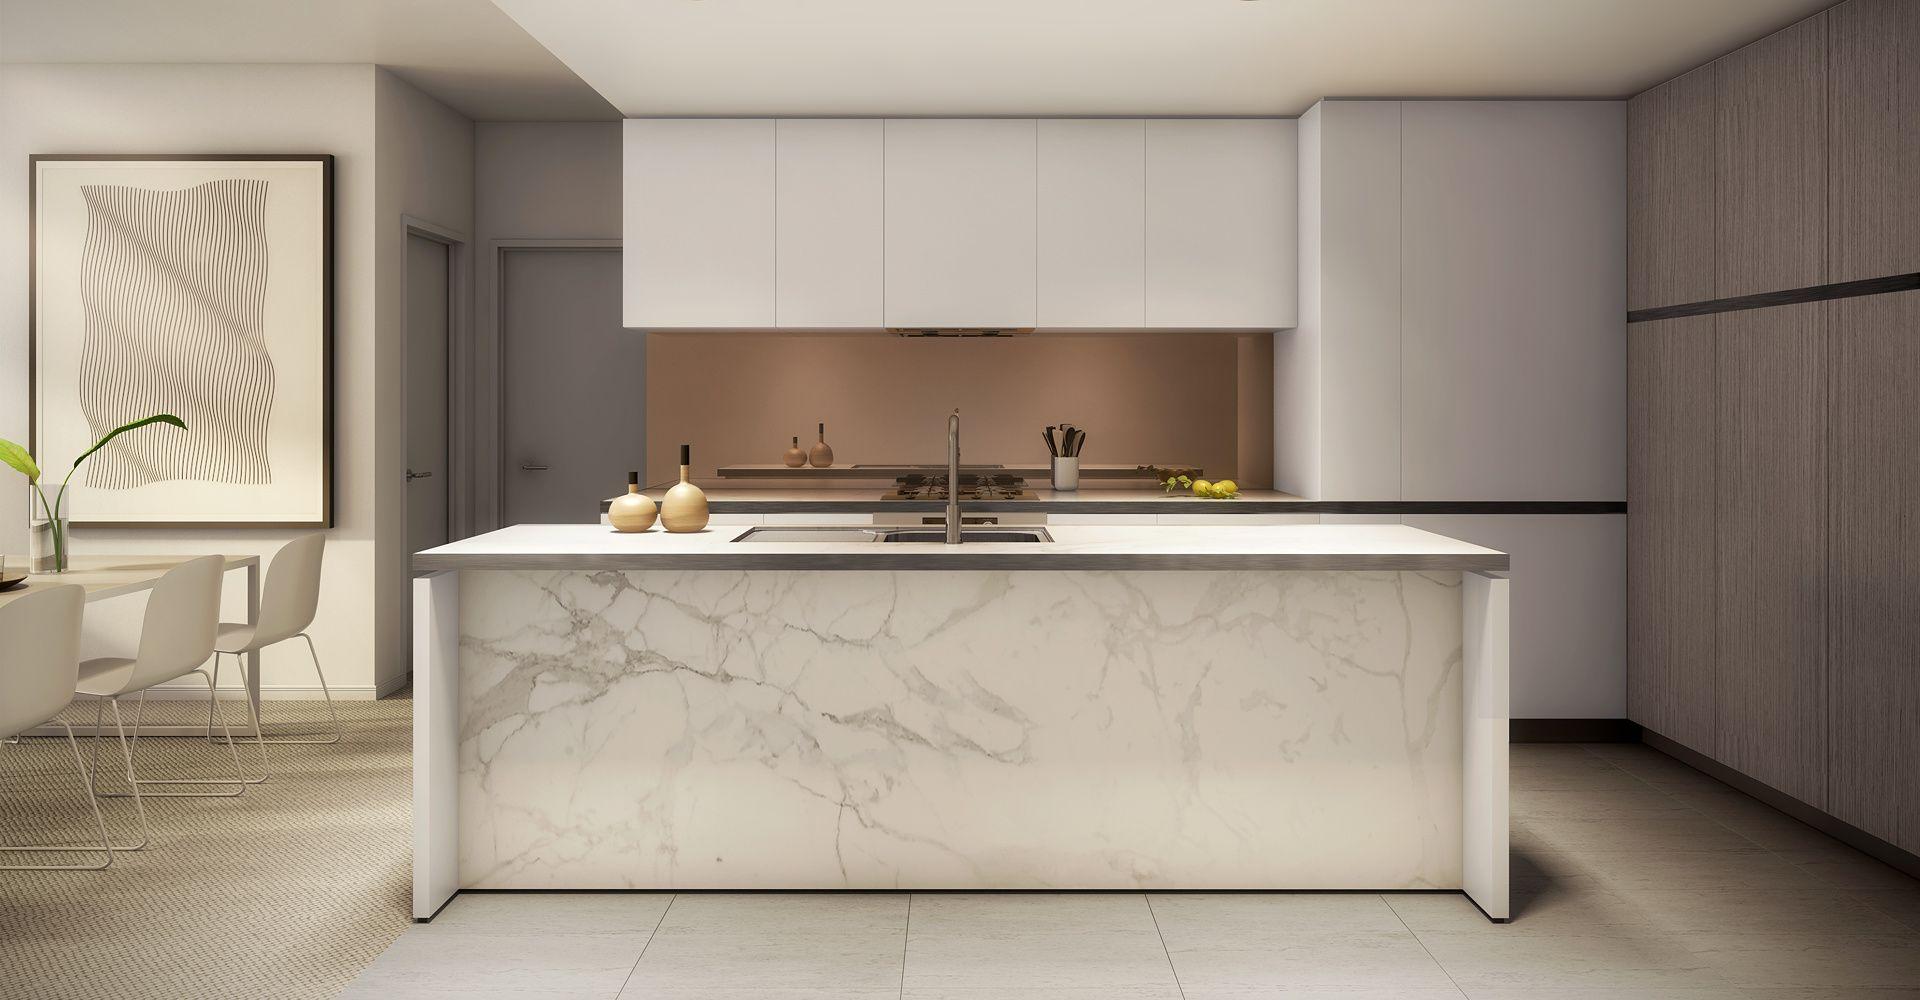 Oxley & Stirling // 9 Christie Street, South Brisbane, QLD // Client ...